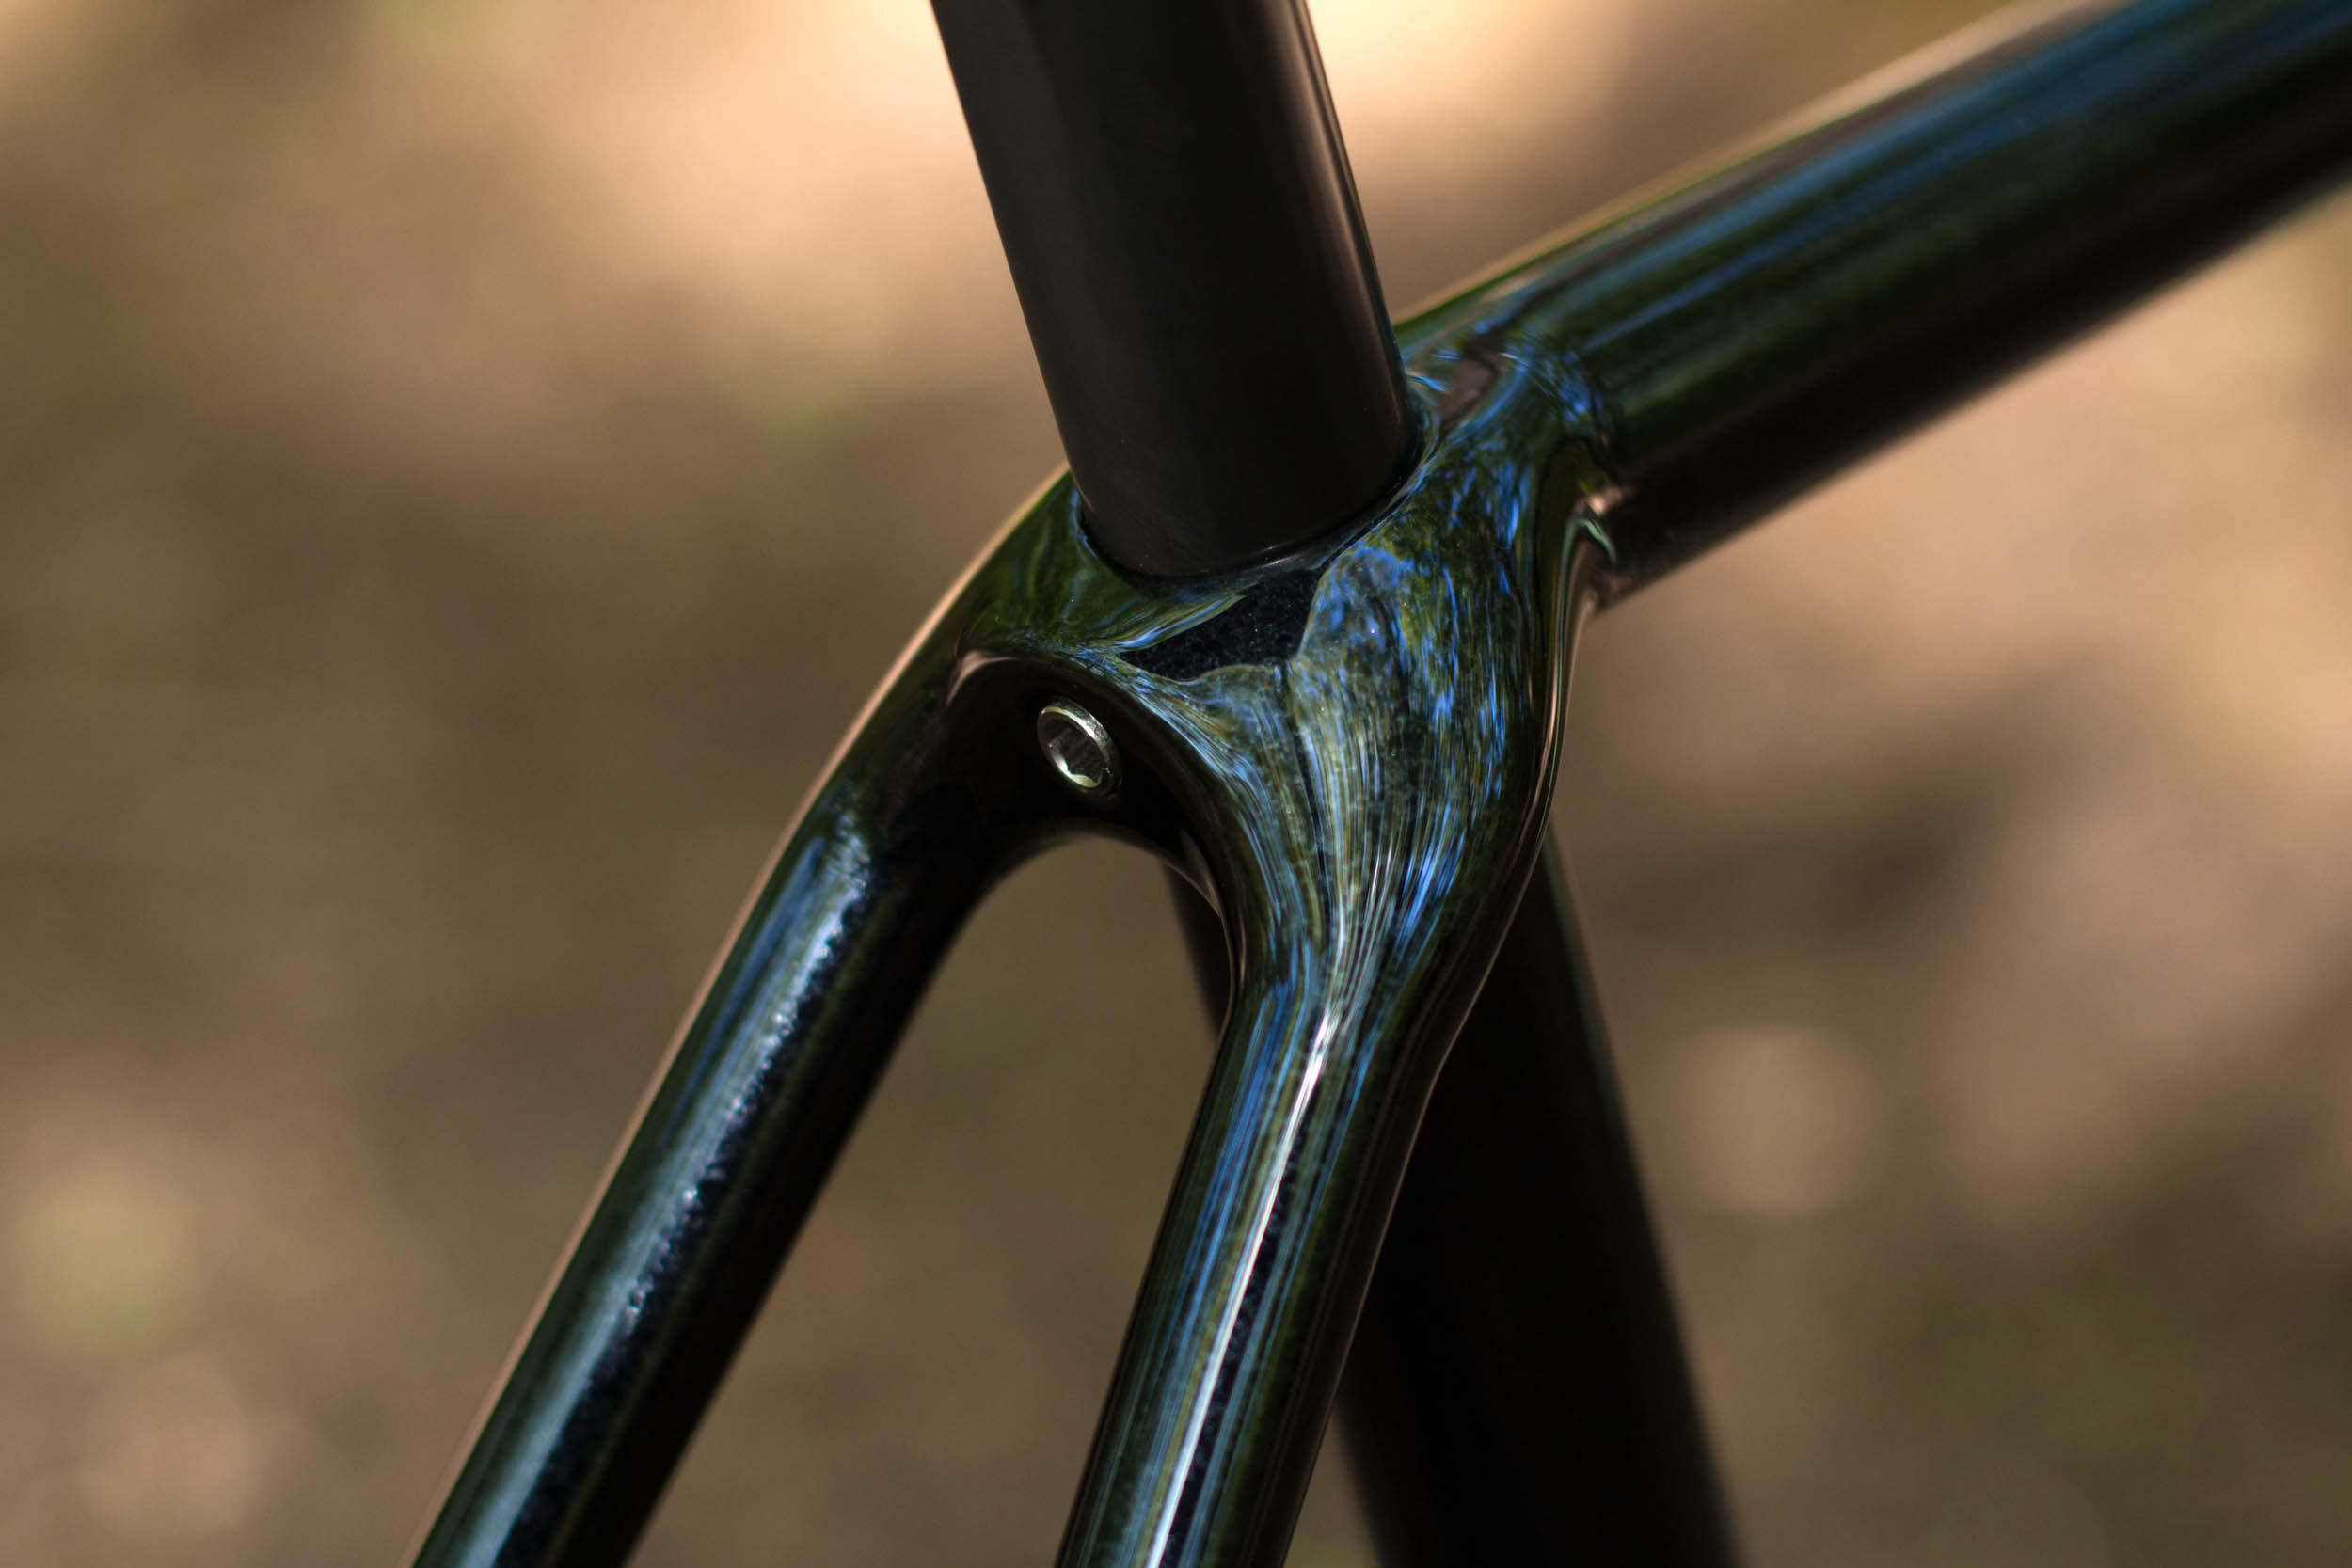 quirk_cycles_mamtor_3DPrinted_build_06.jpg